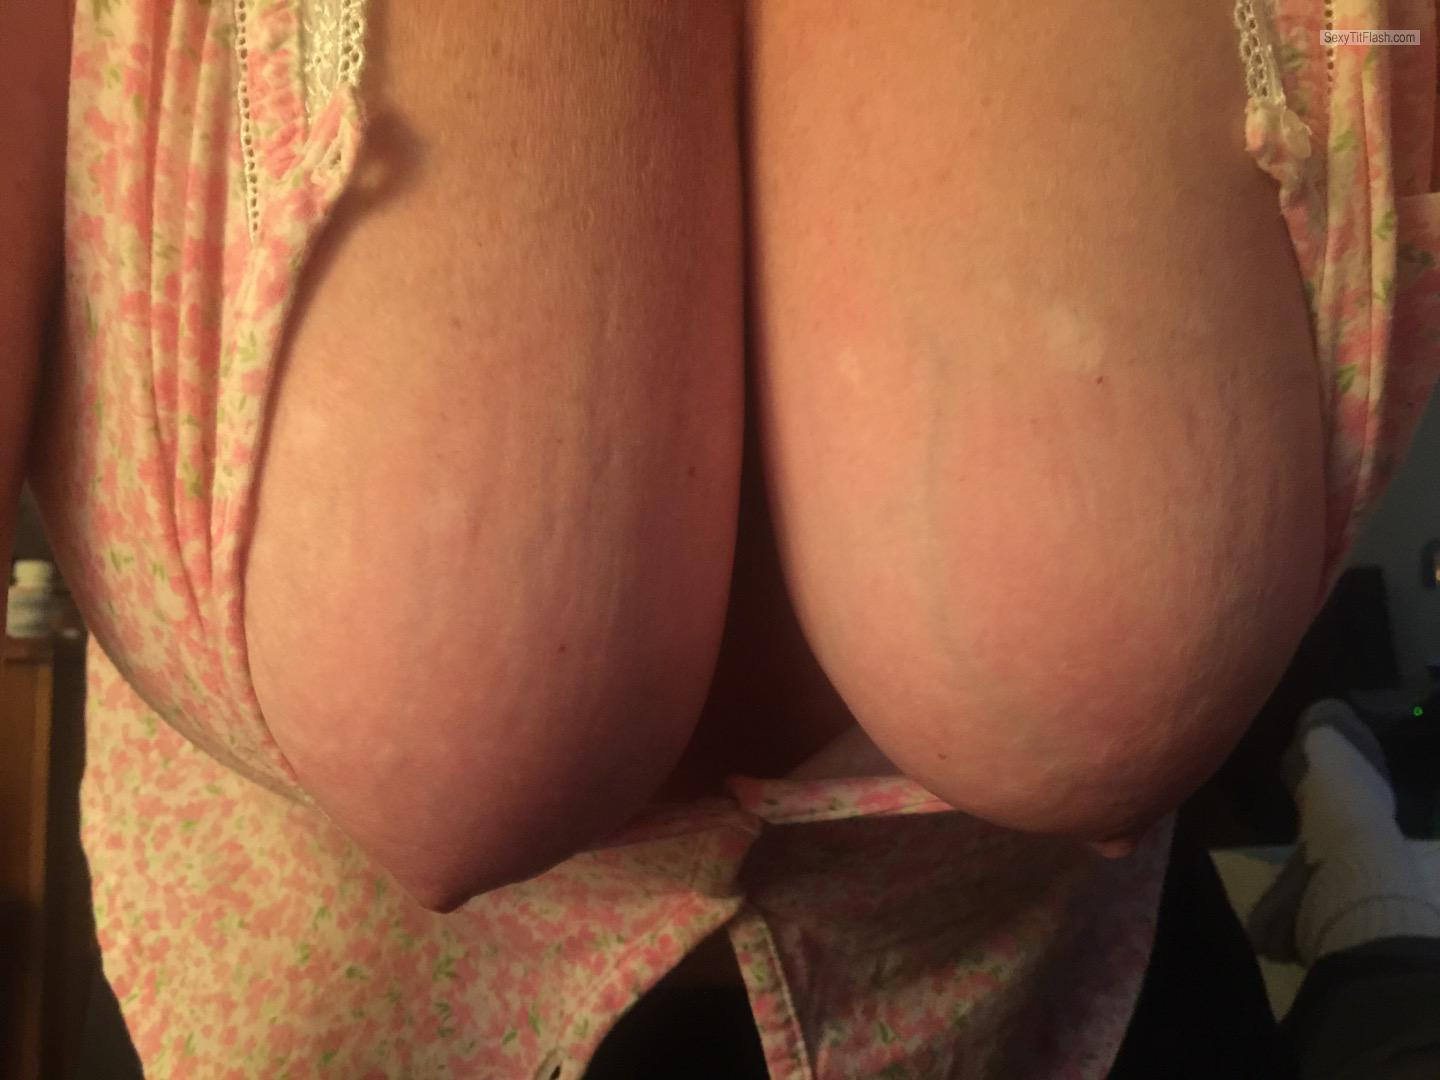 My Very big Tits Selfie by Risky Wife